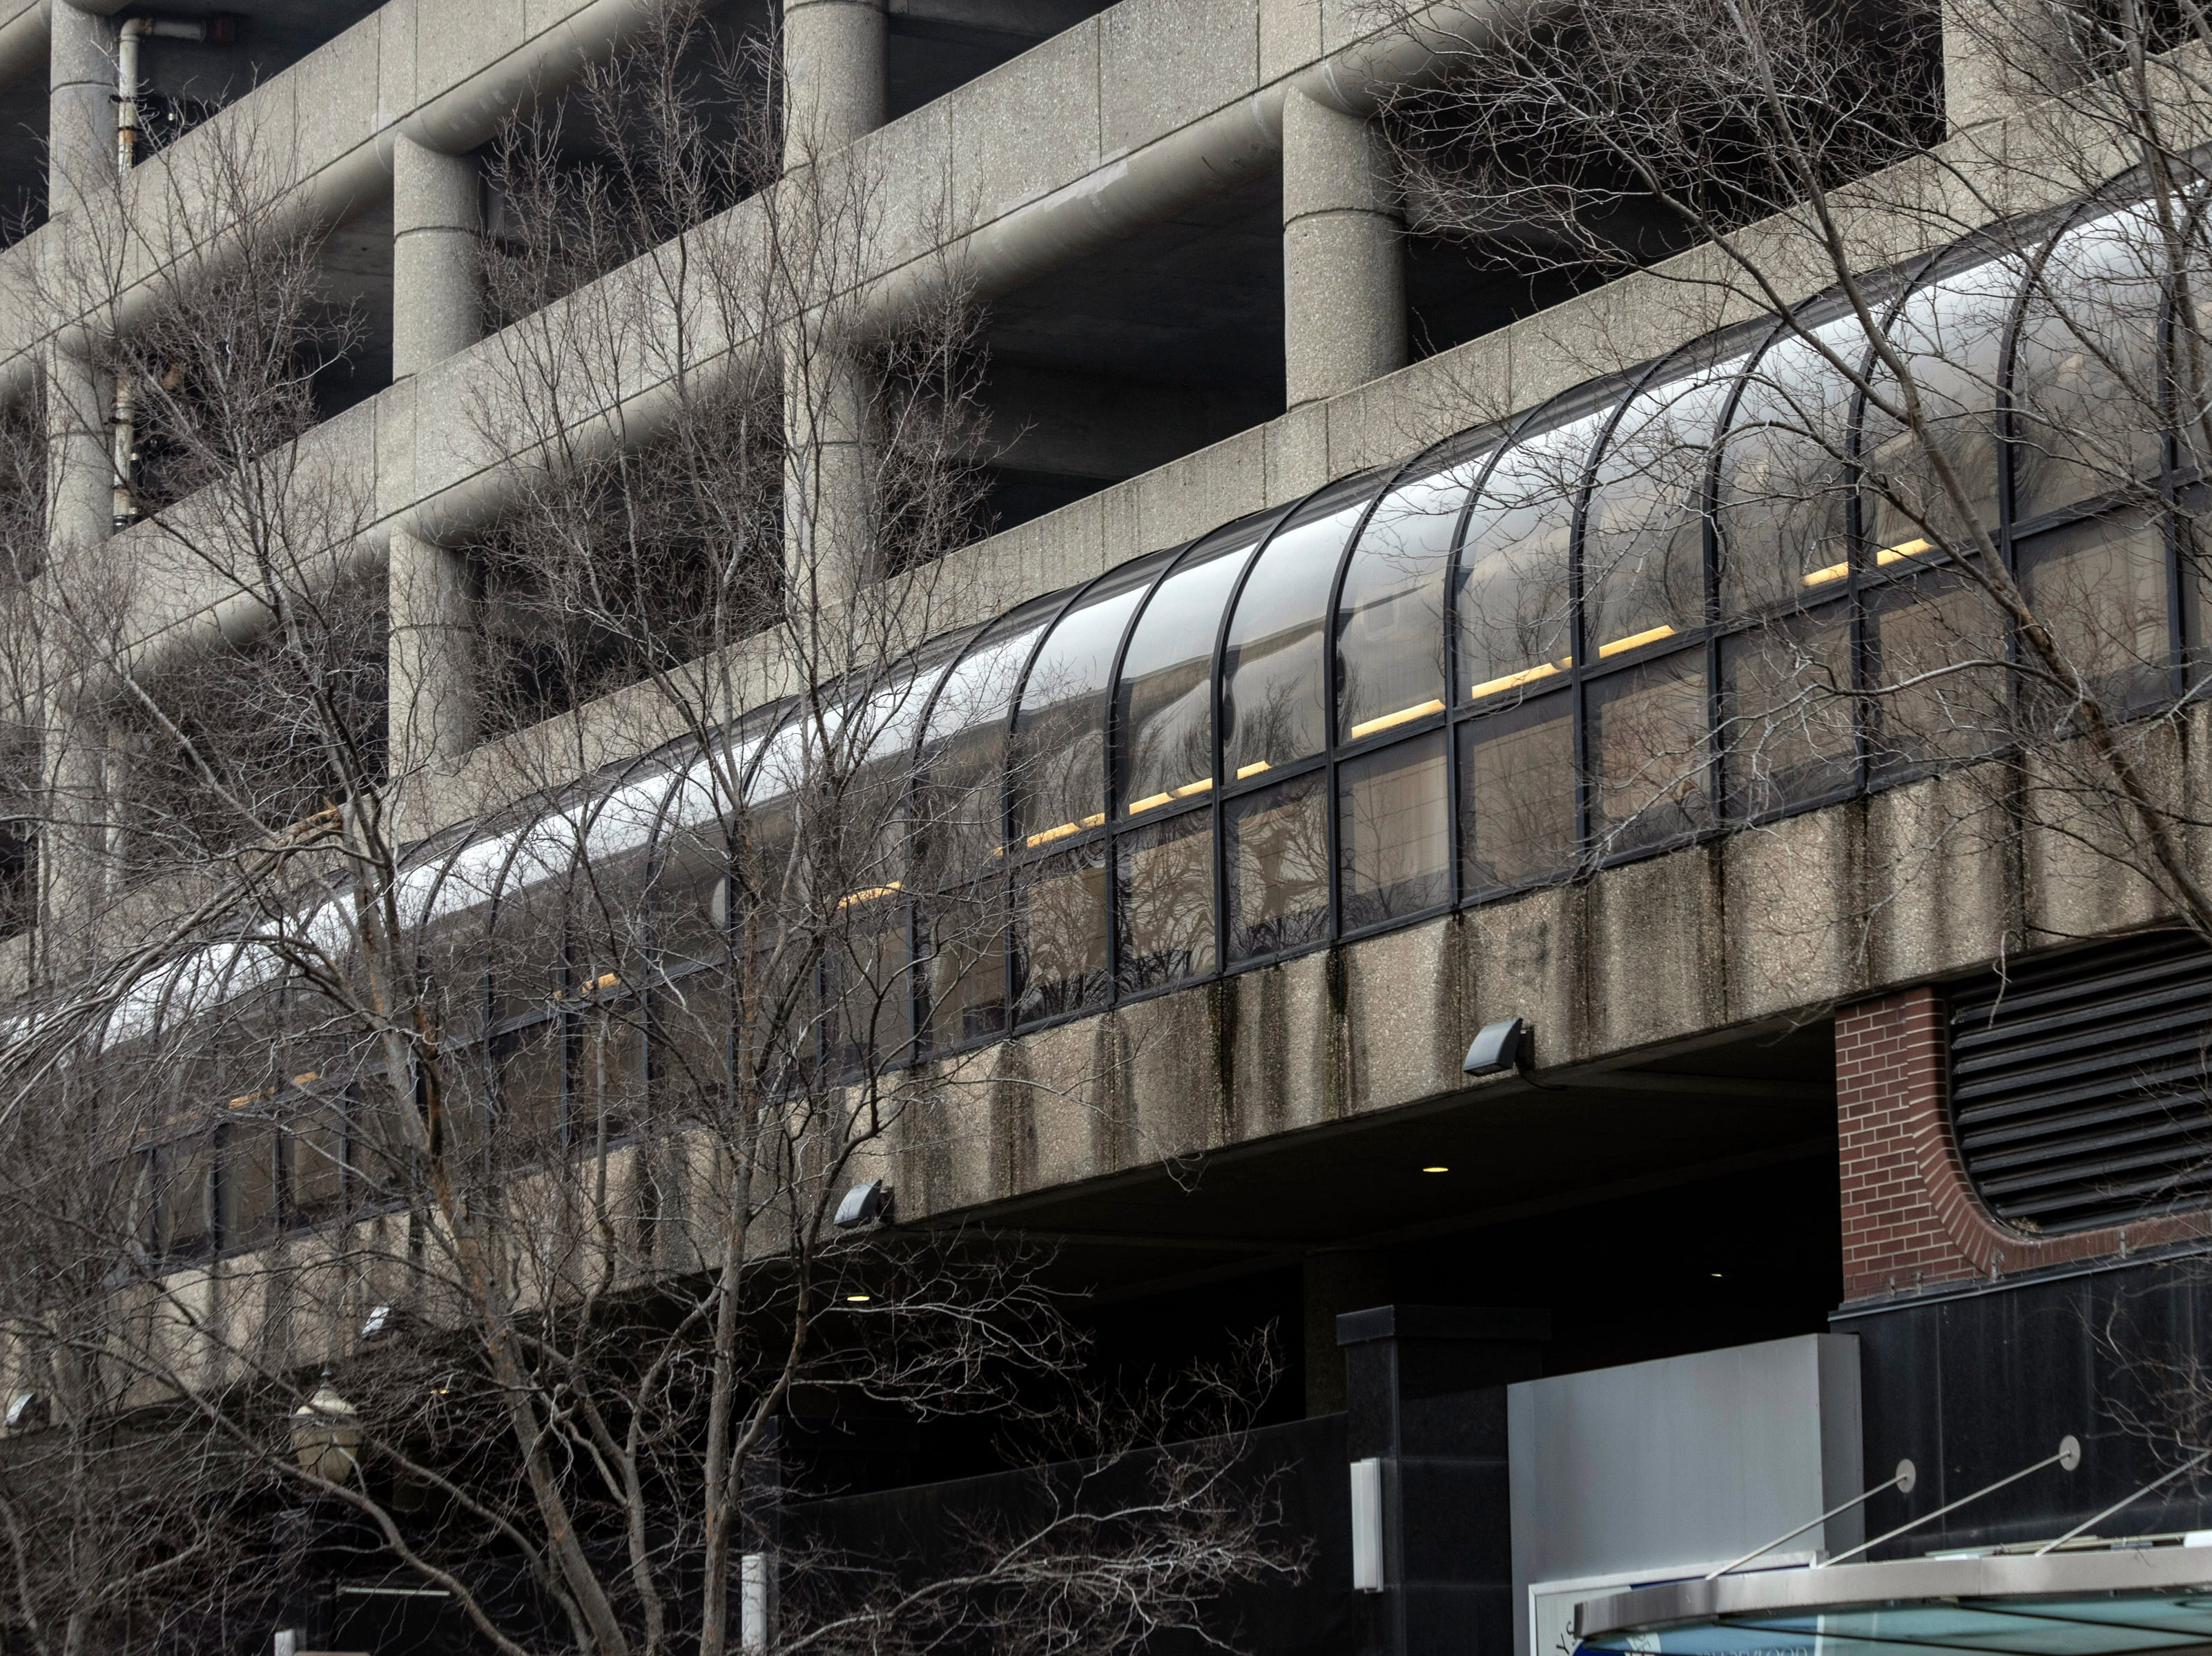 One of the longer stretches of the Louie Link runs the length of the Cowger Garage on 4th Street between Market and Main Streets. 1/16/19